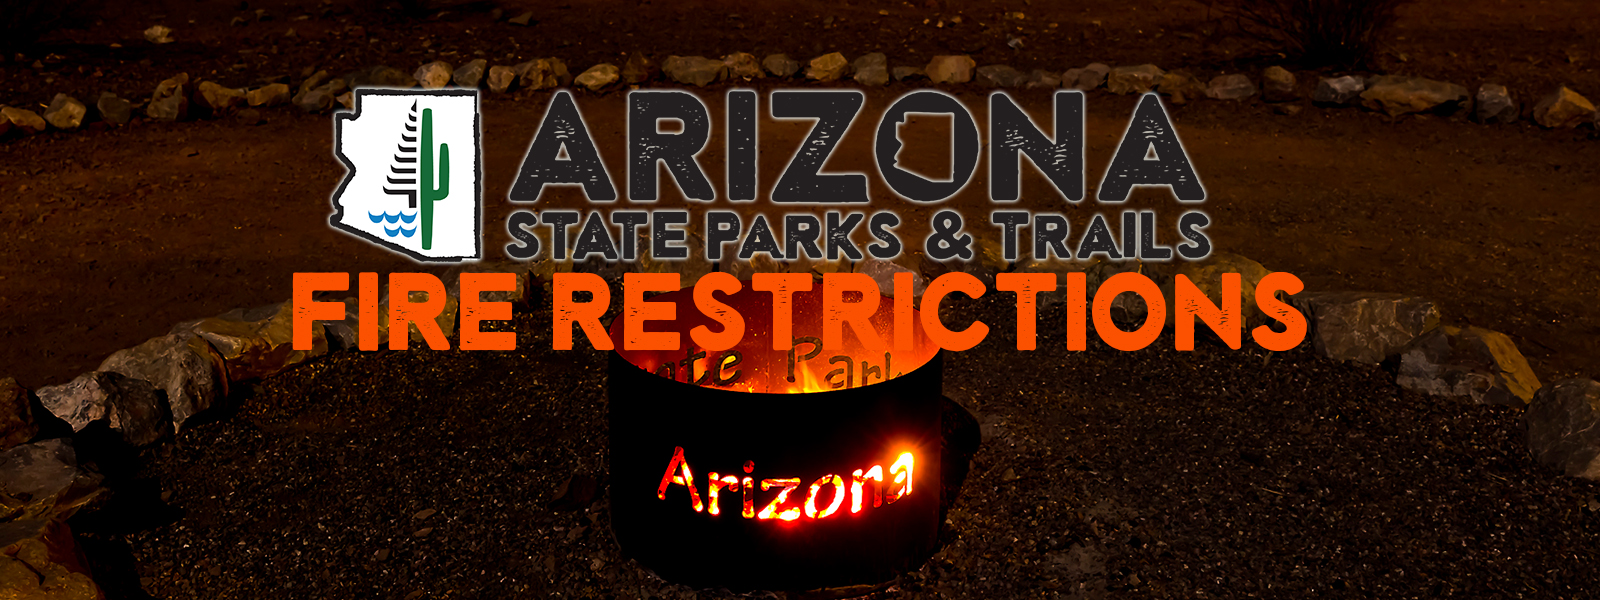 Arizona State Park Fire Restrictions and Info | Arizona State Parks